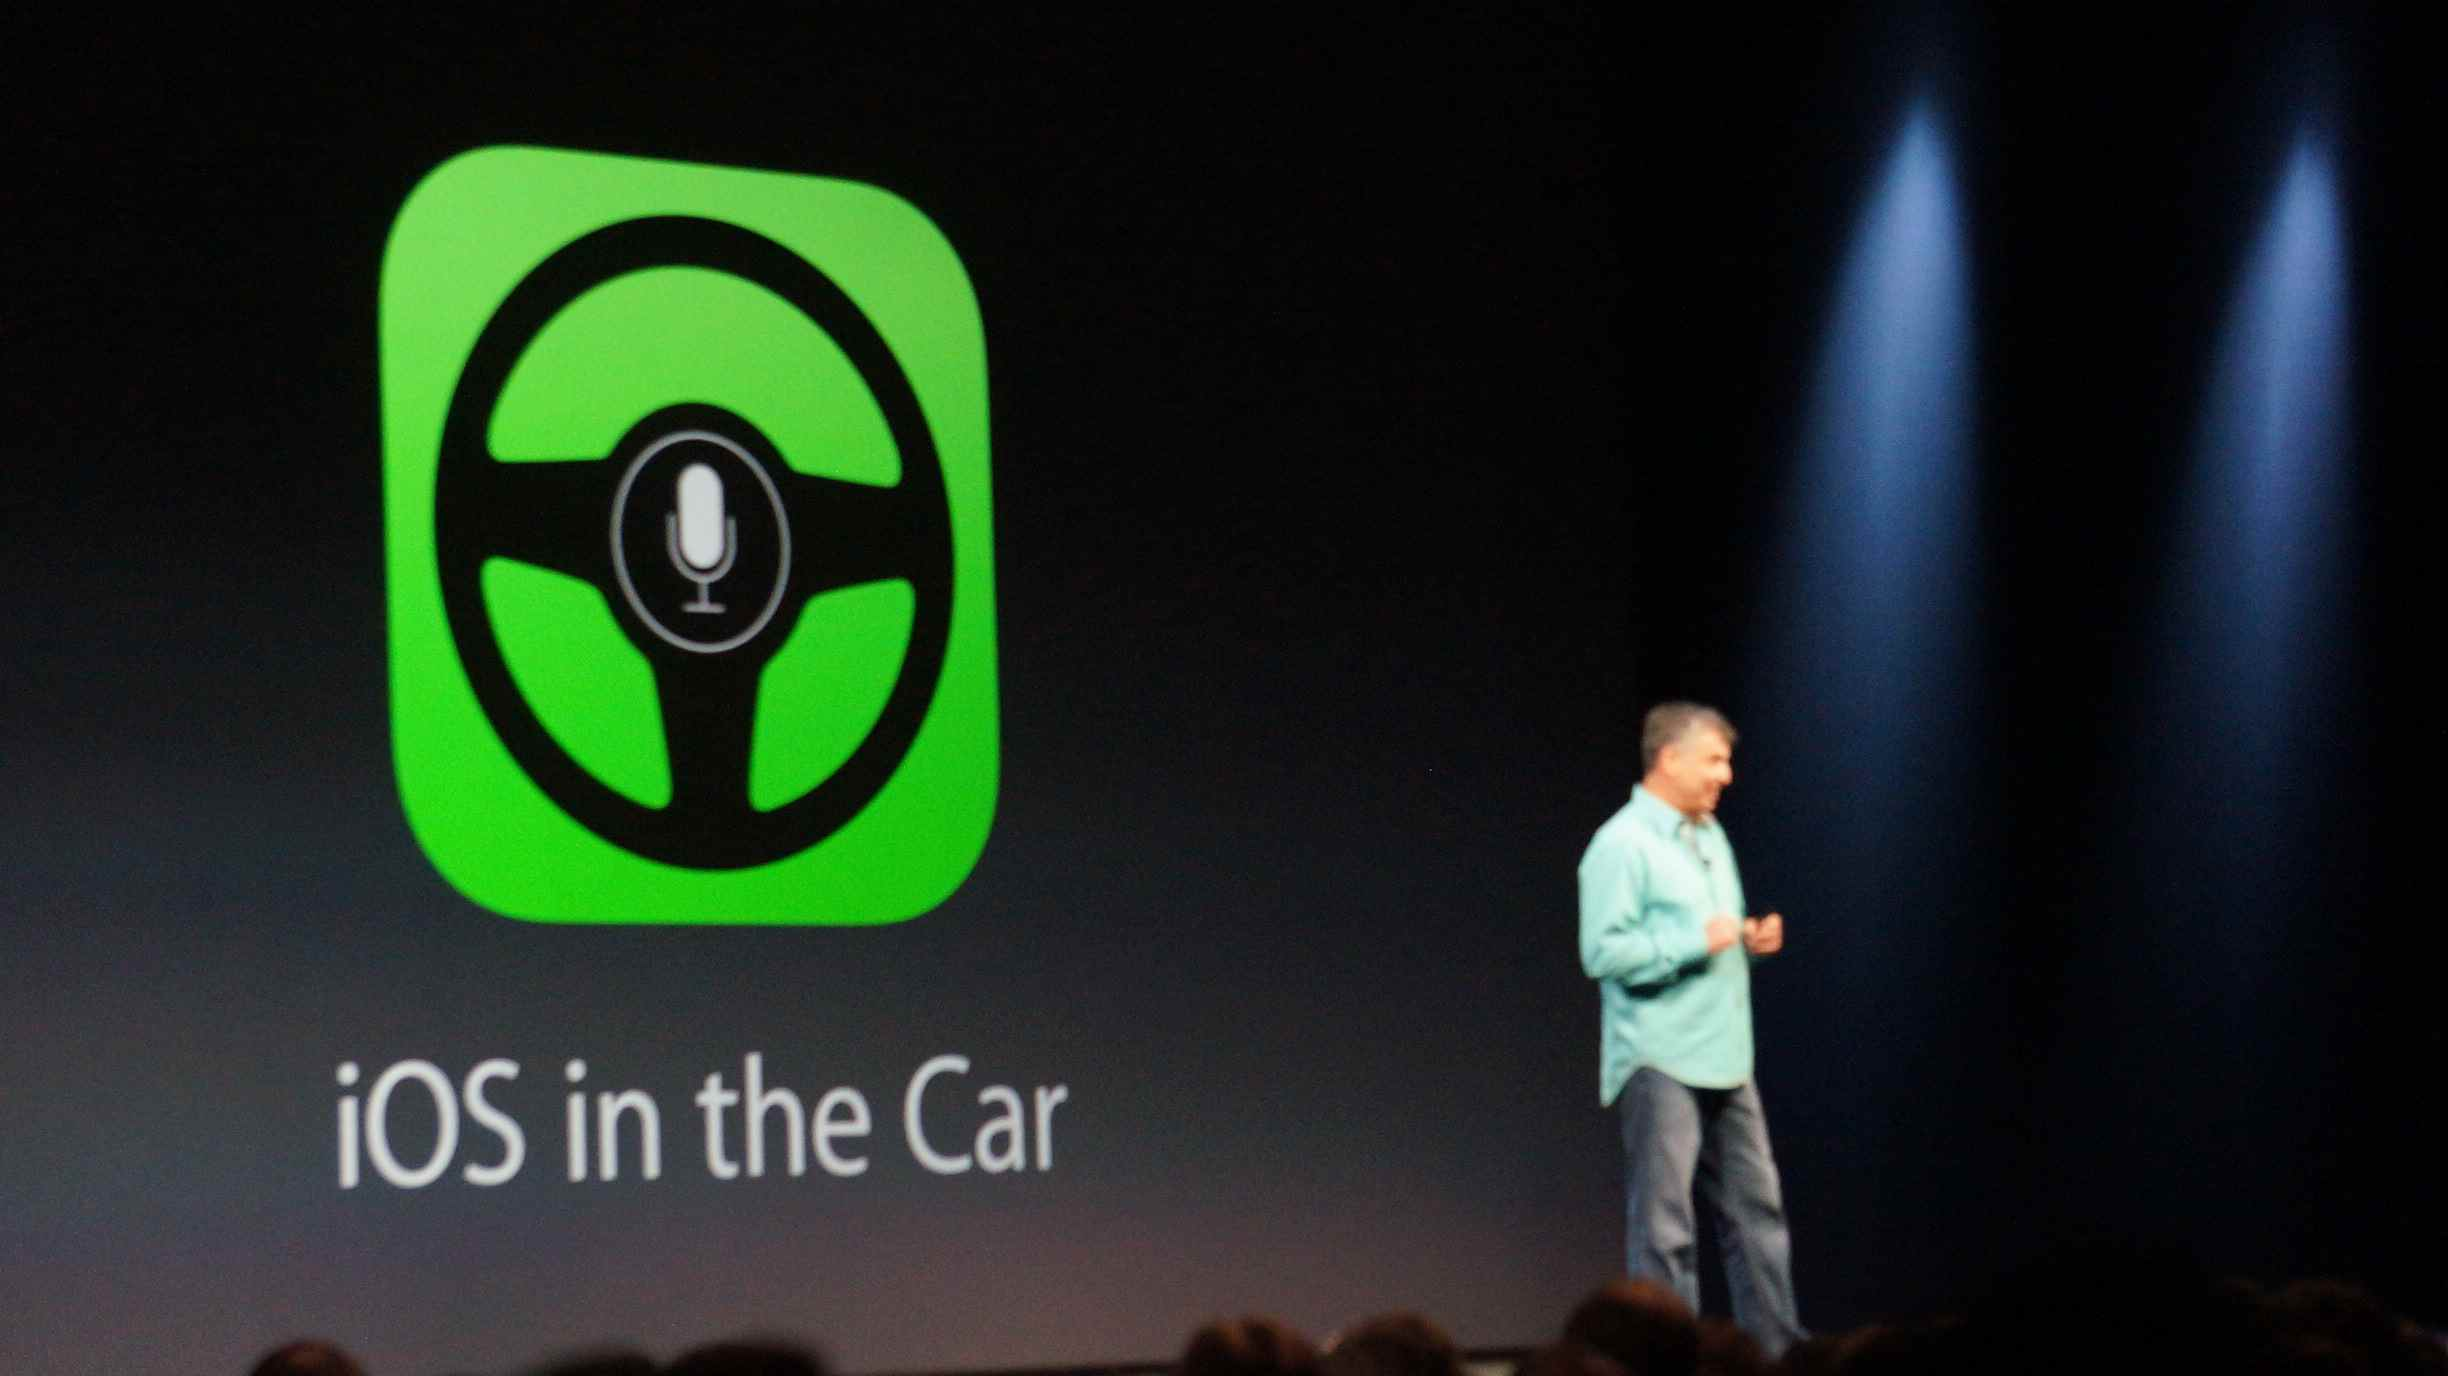 WWDC iOS car interface